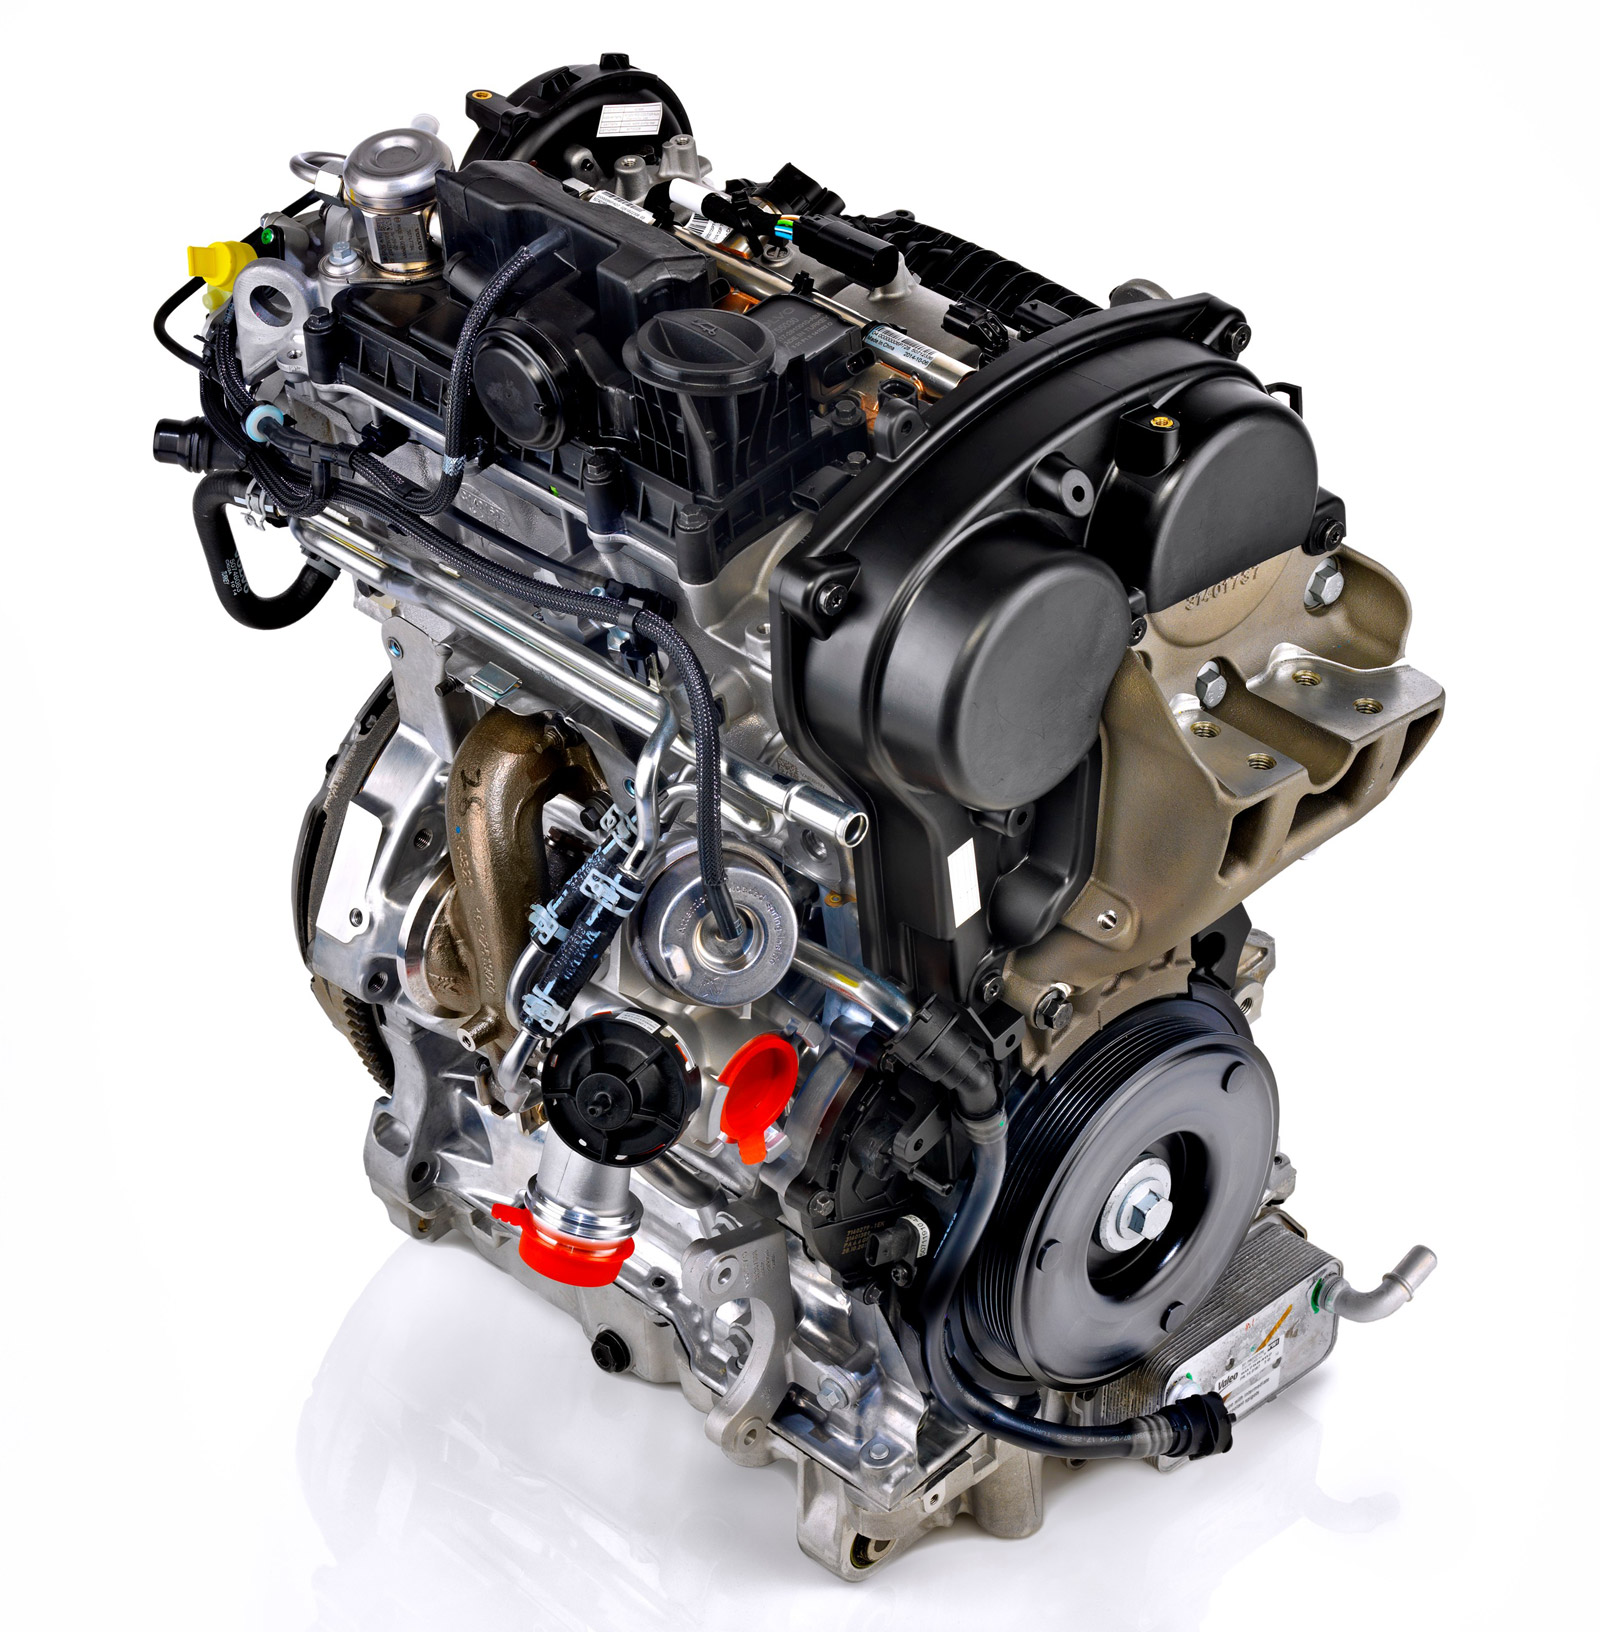 Ford 2 3 Engine Review: Volvo 3-Cylinder Engine Echoes Ford, BMW, Daimler & Others